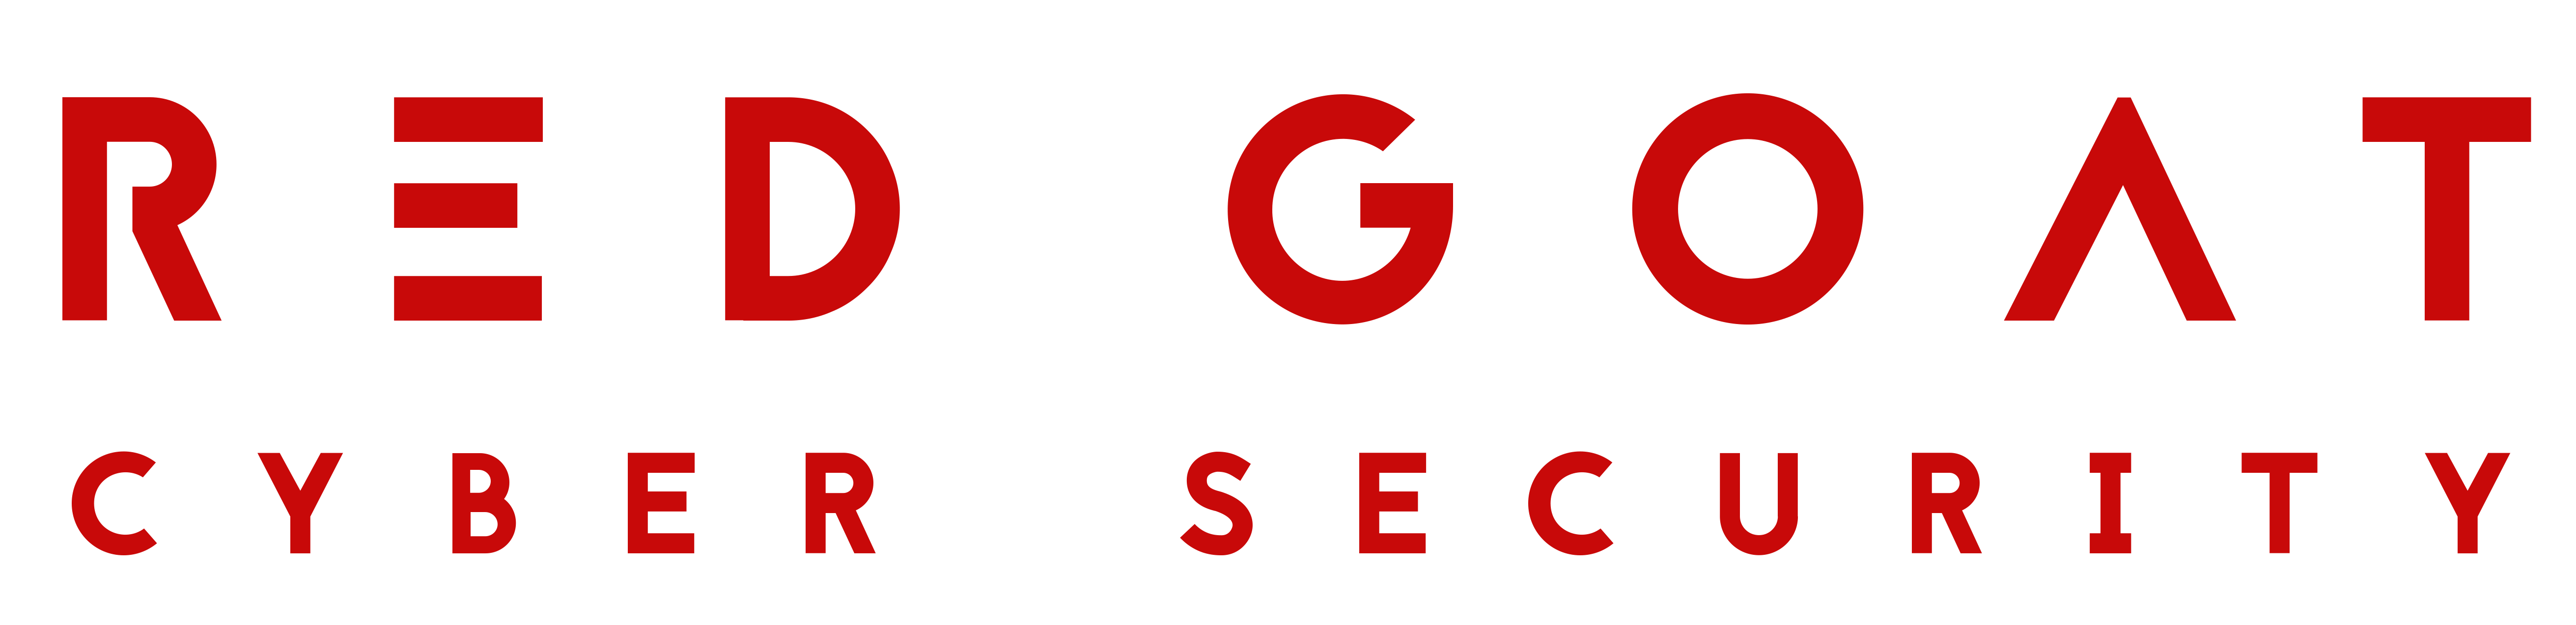 Red Goat Cyber Security Logo